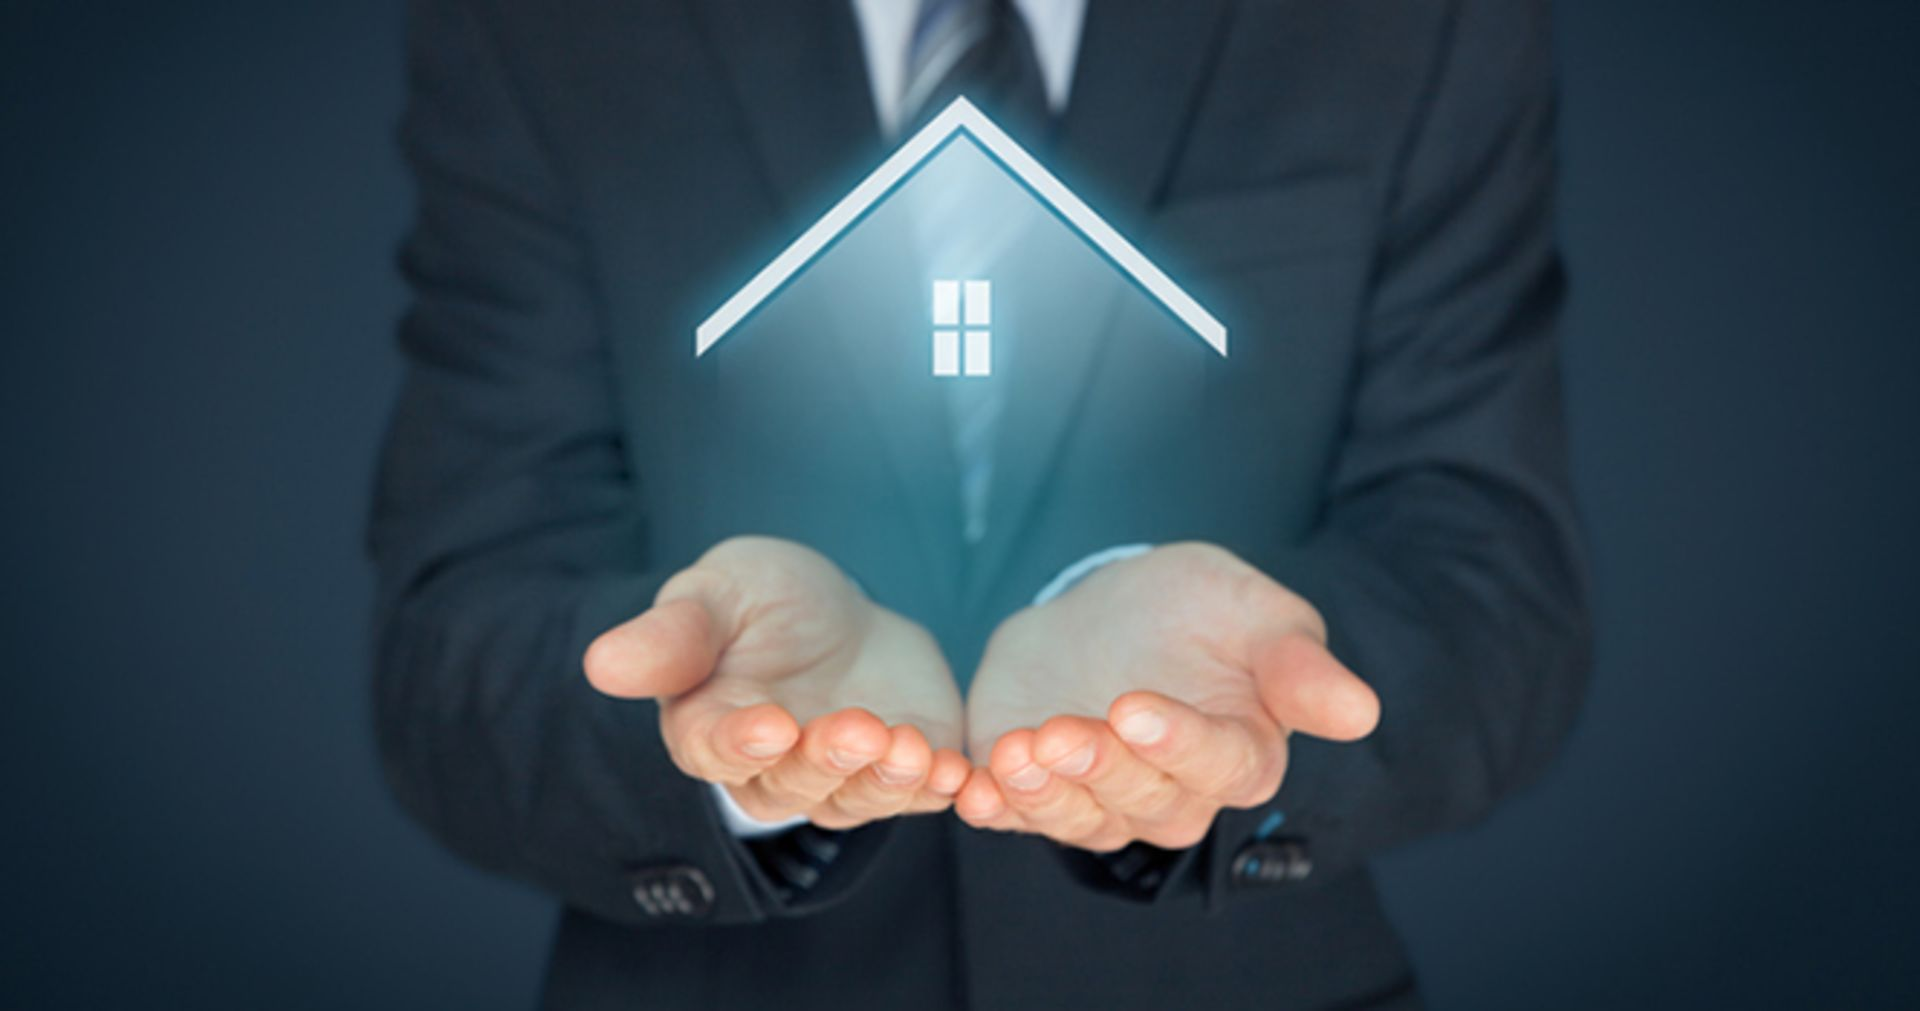 What Experts are Saying About the Current Housing Market